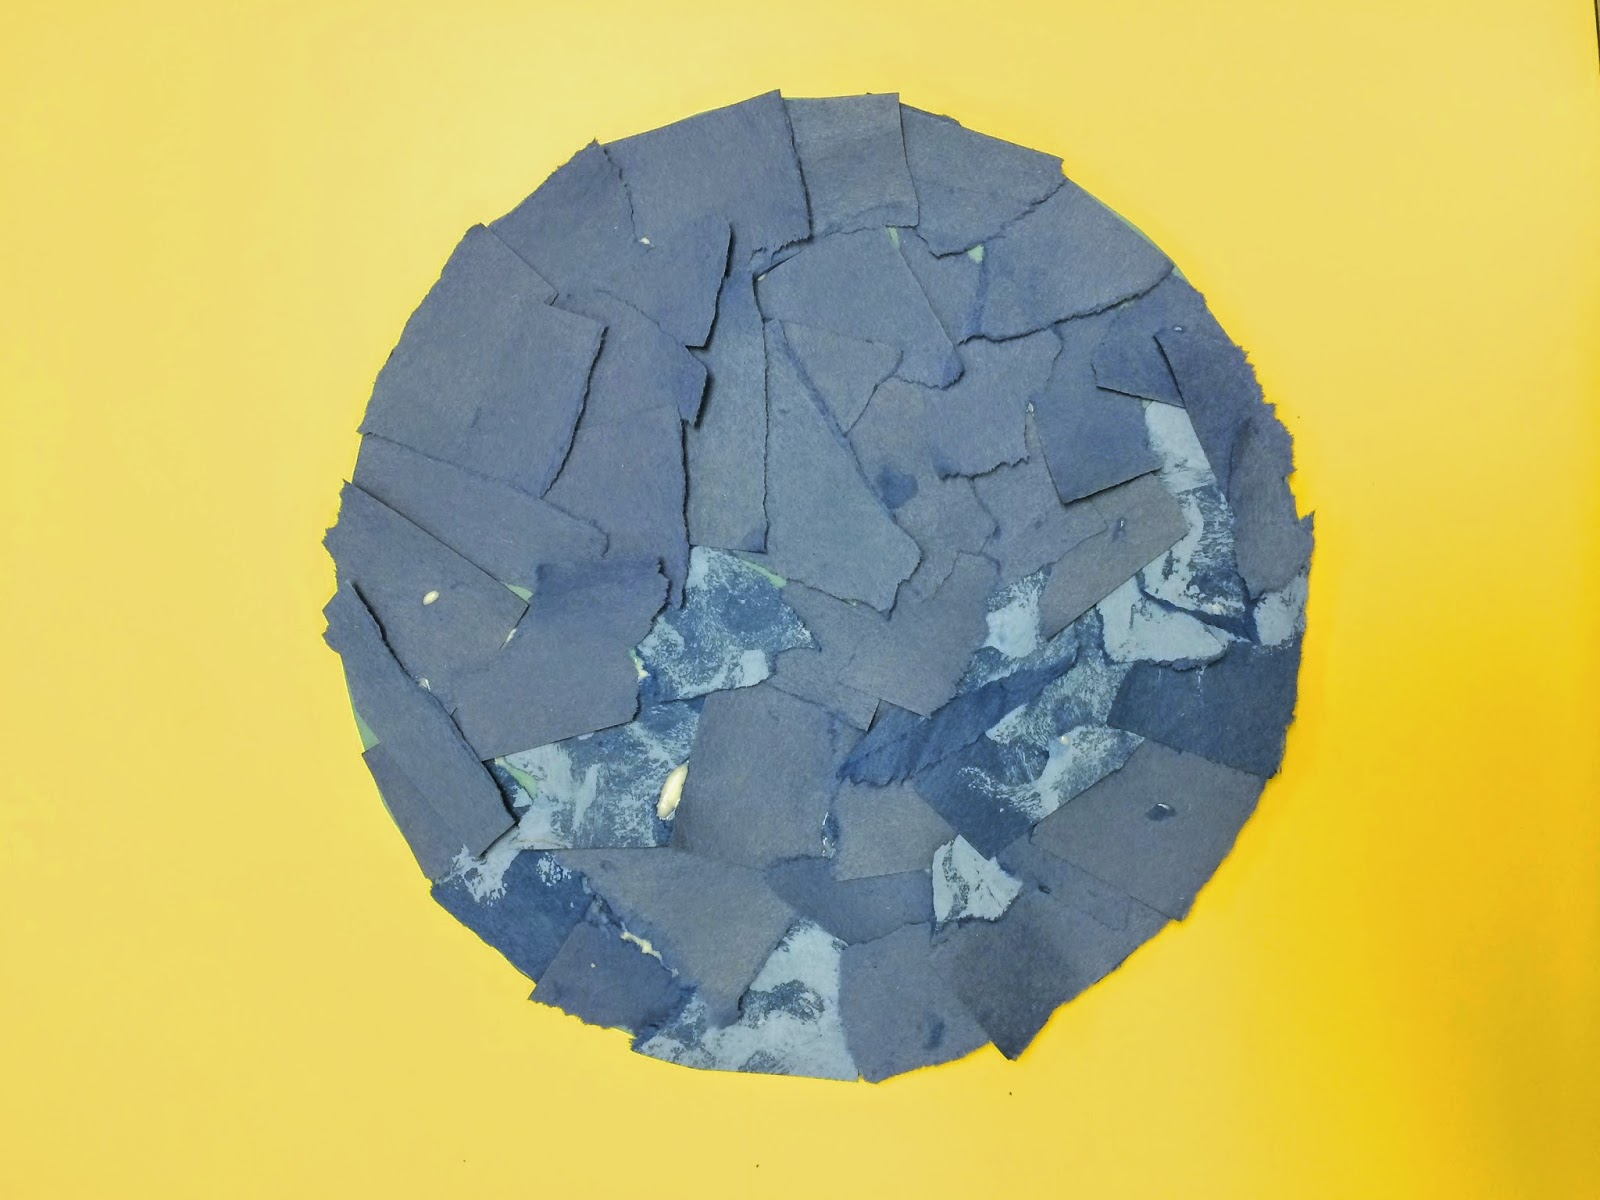 Tear fall colored construction paper into small pieces and glue - Tear Or Cut 1 Strips Of Blue Construction Paper Into Smaller Squares And Cover Circle Disregard The Two Tones I Took A Picture After I Started Painting